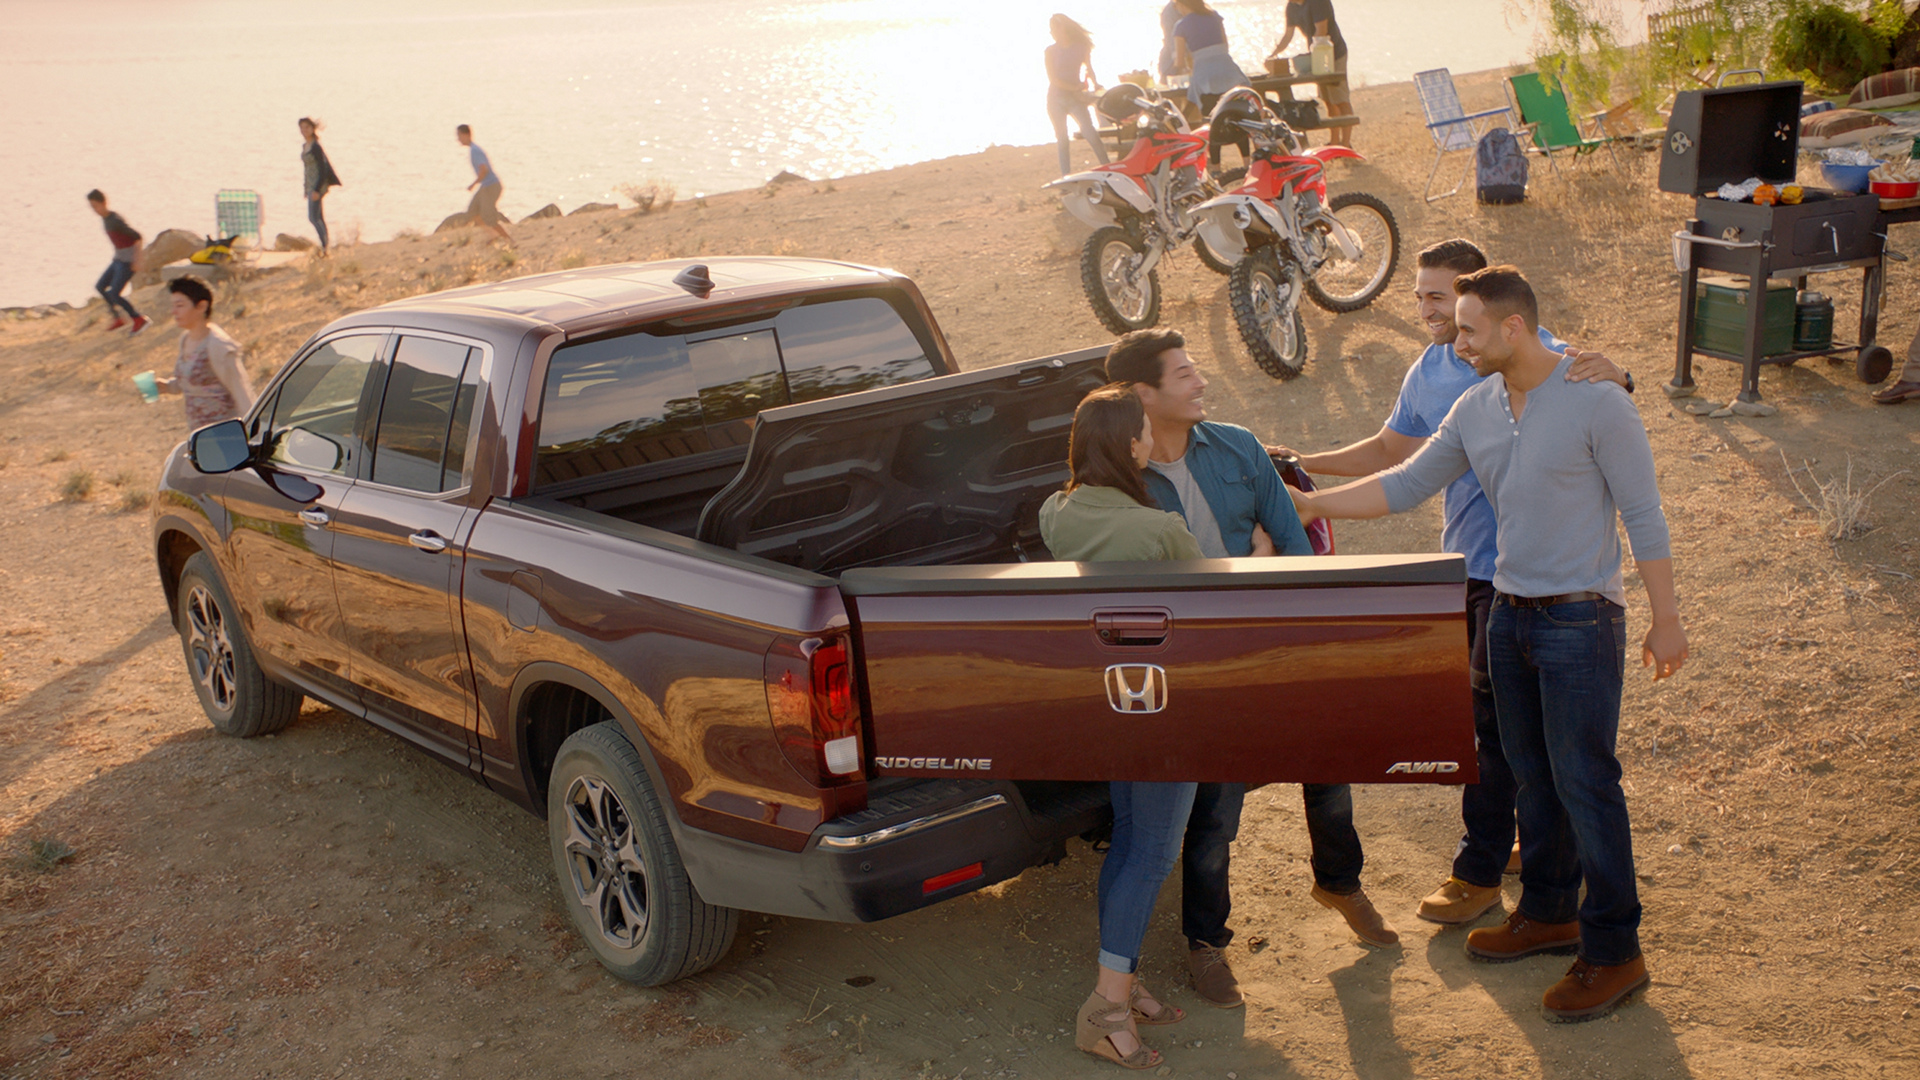 Honda Debuts New Hispanic Marketing Campaign for the All-New 2017 Ridgeline Pickup Truck © Honda Motor Co., Ltd.